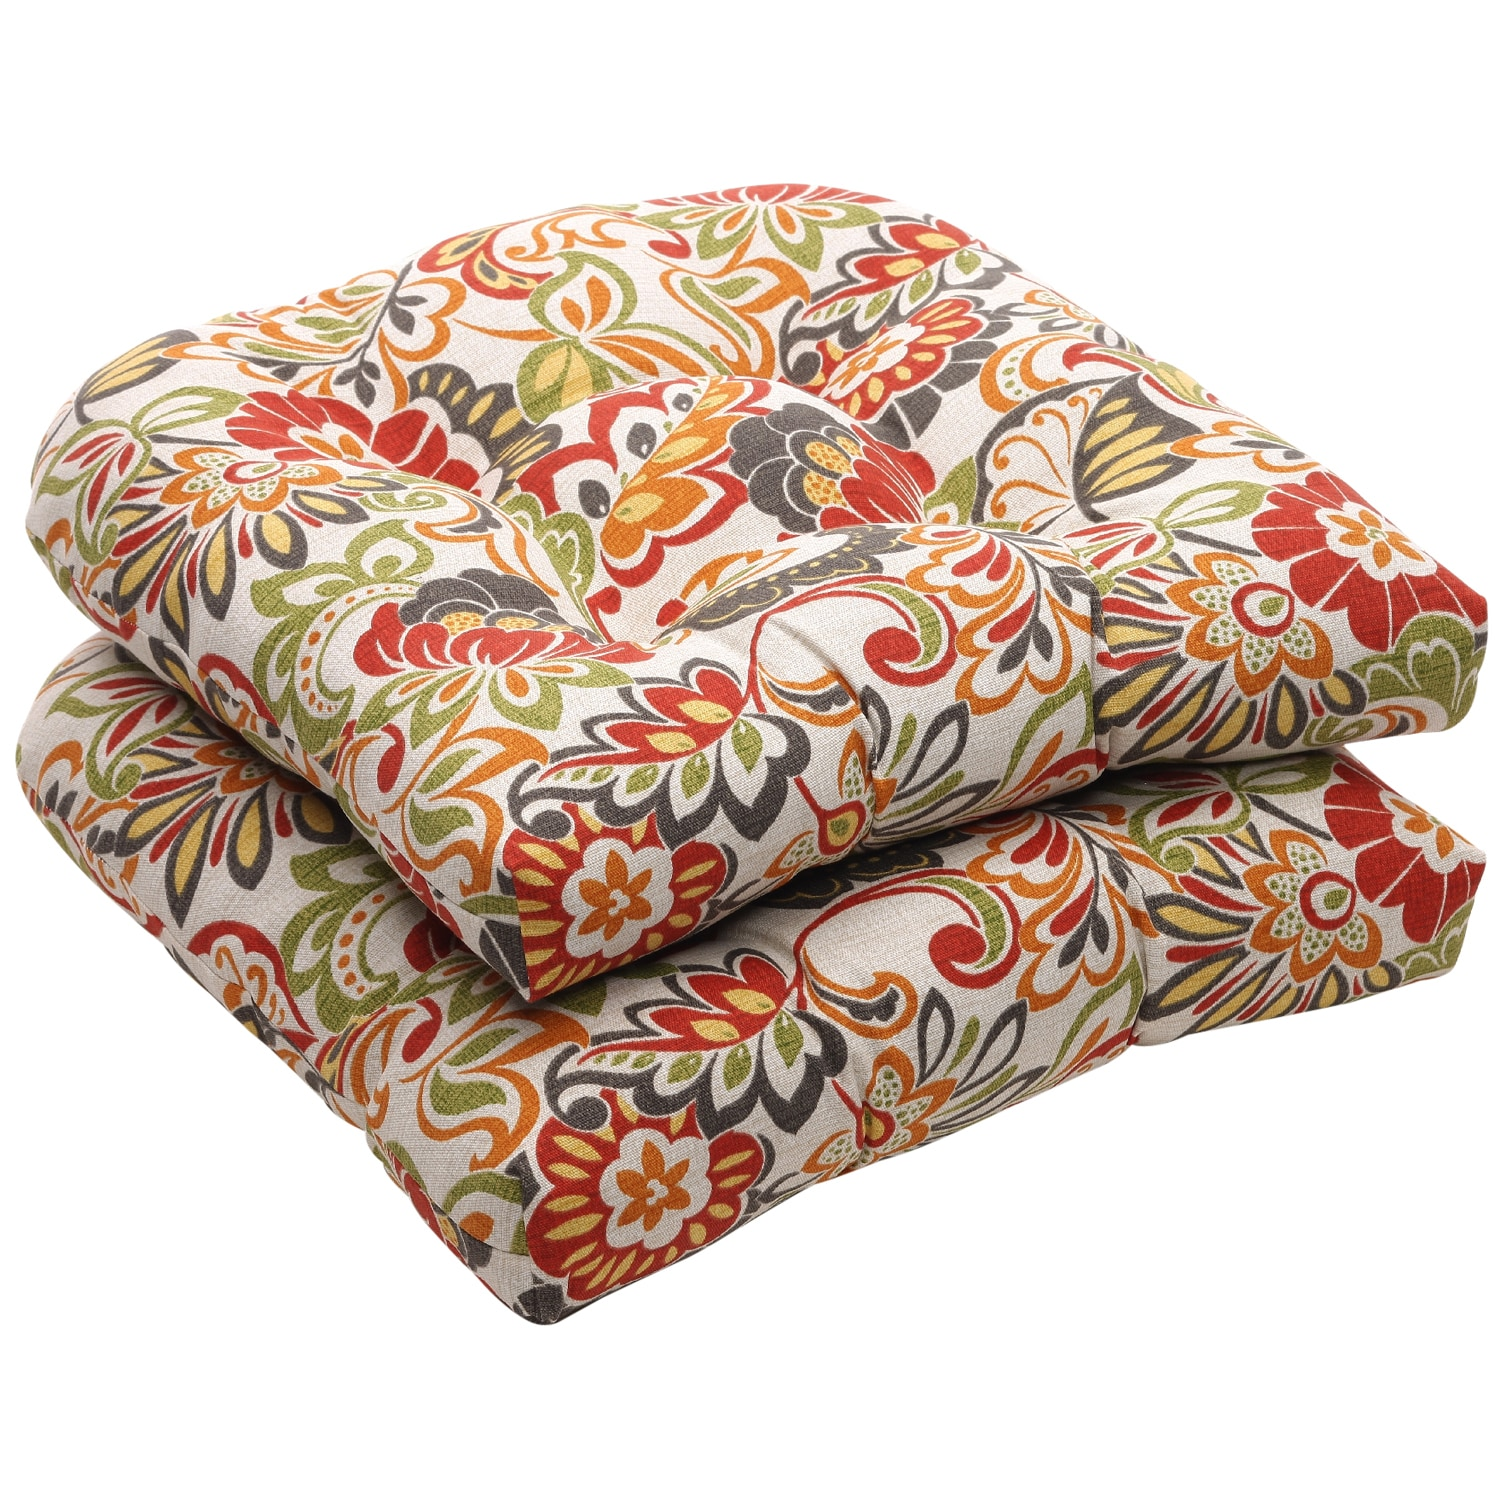 Cane chairs with cushions - Outdoor Multicolored Floral Wicker Seat Cushions Set Of 2